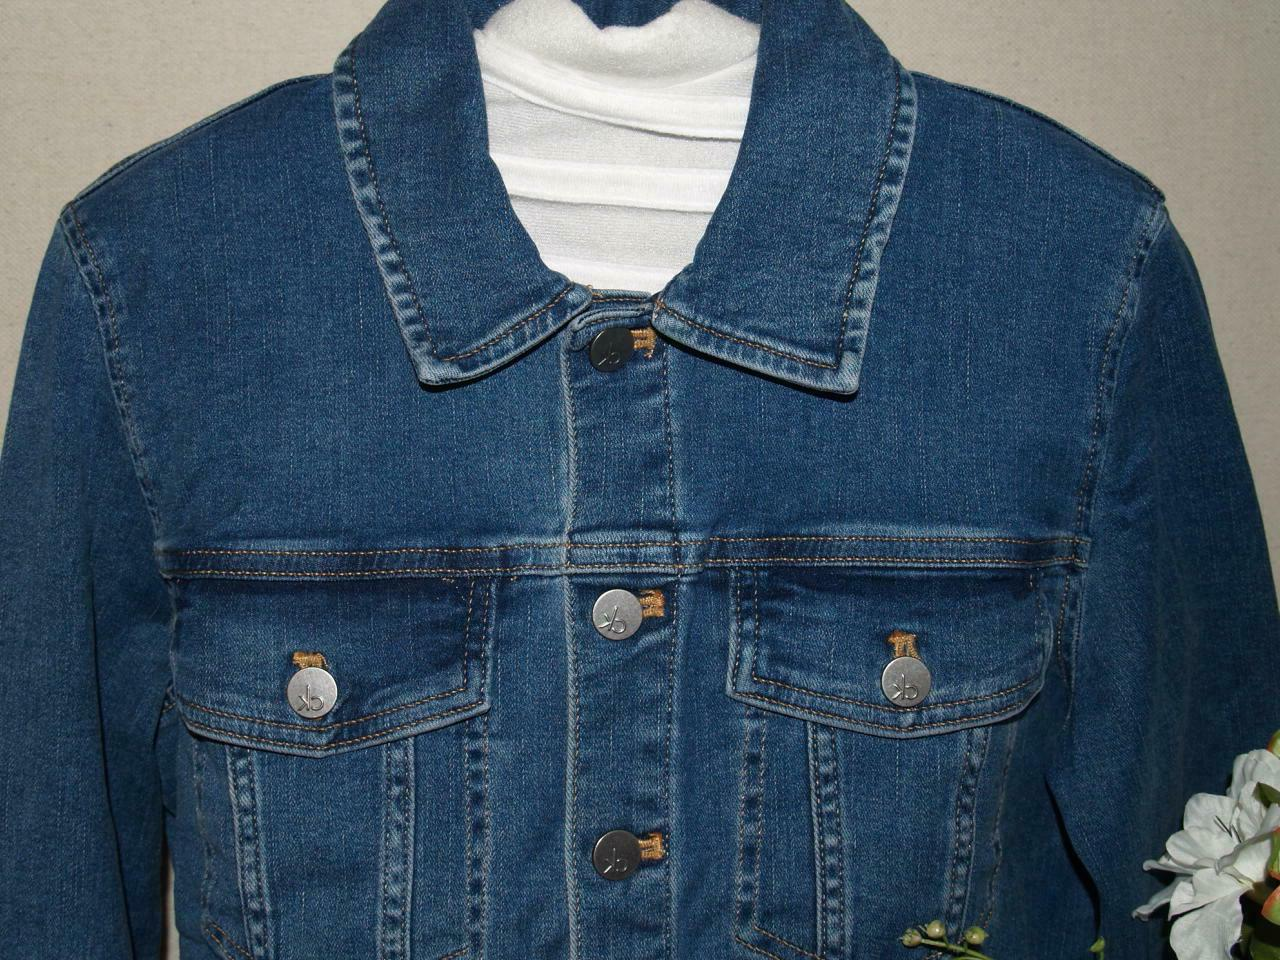 NEW Women's Blue Denim Jacket